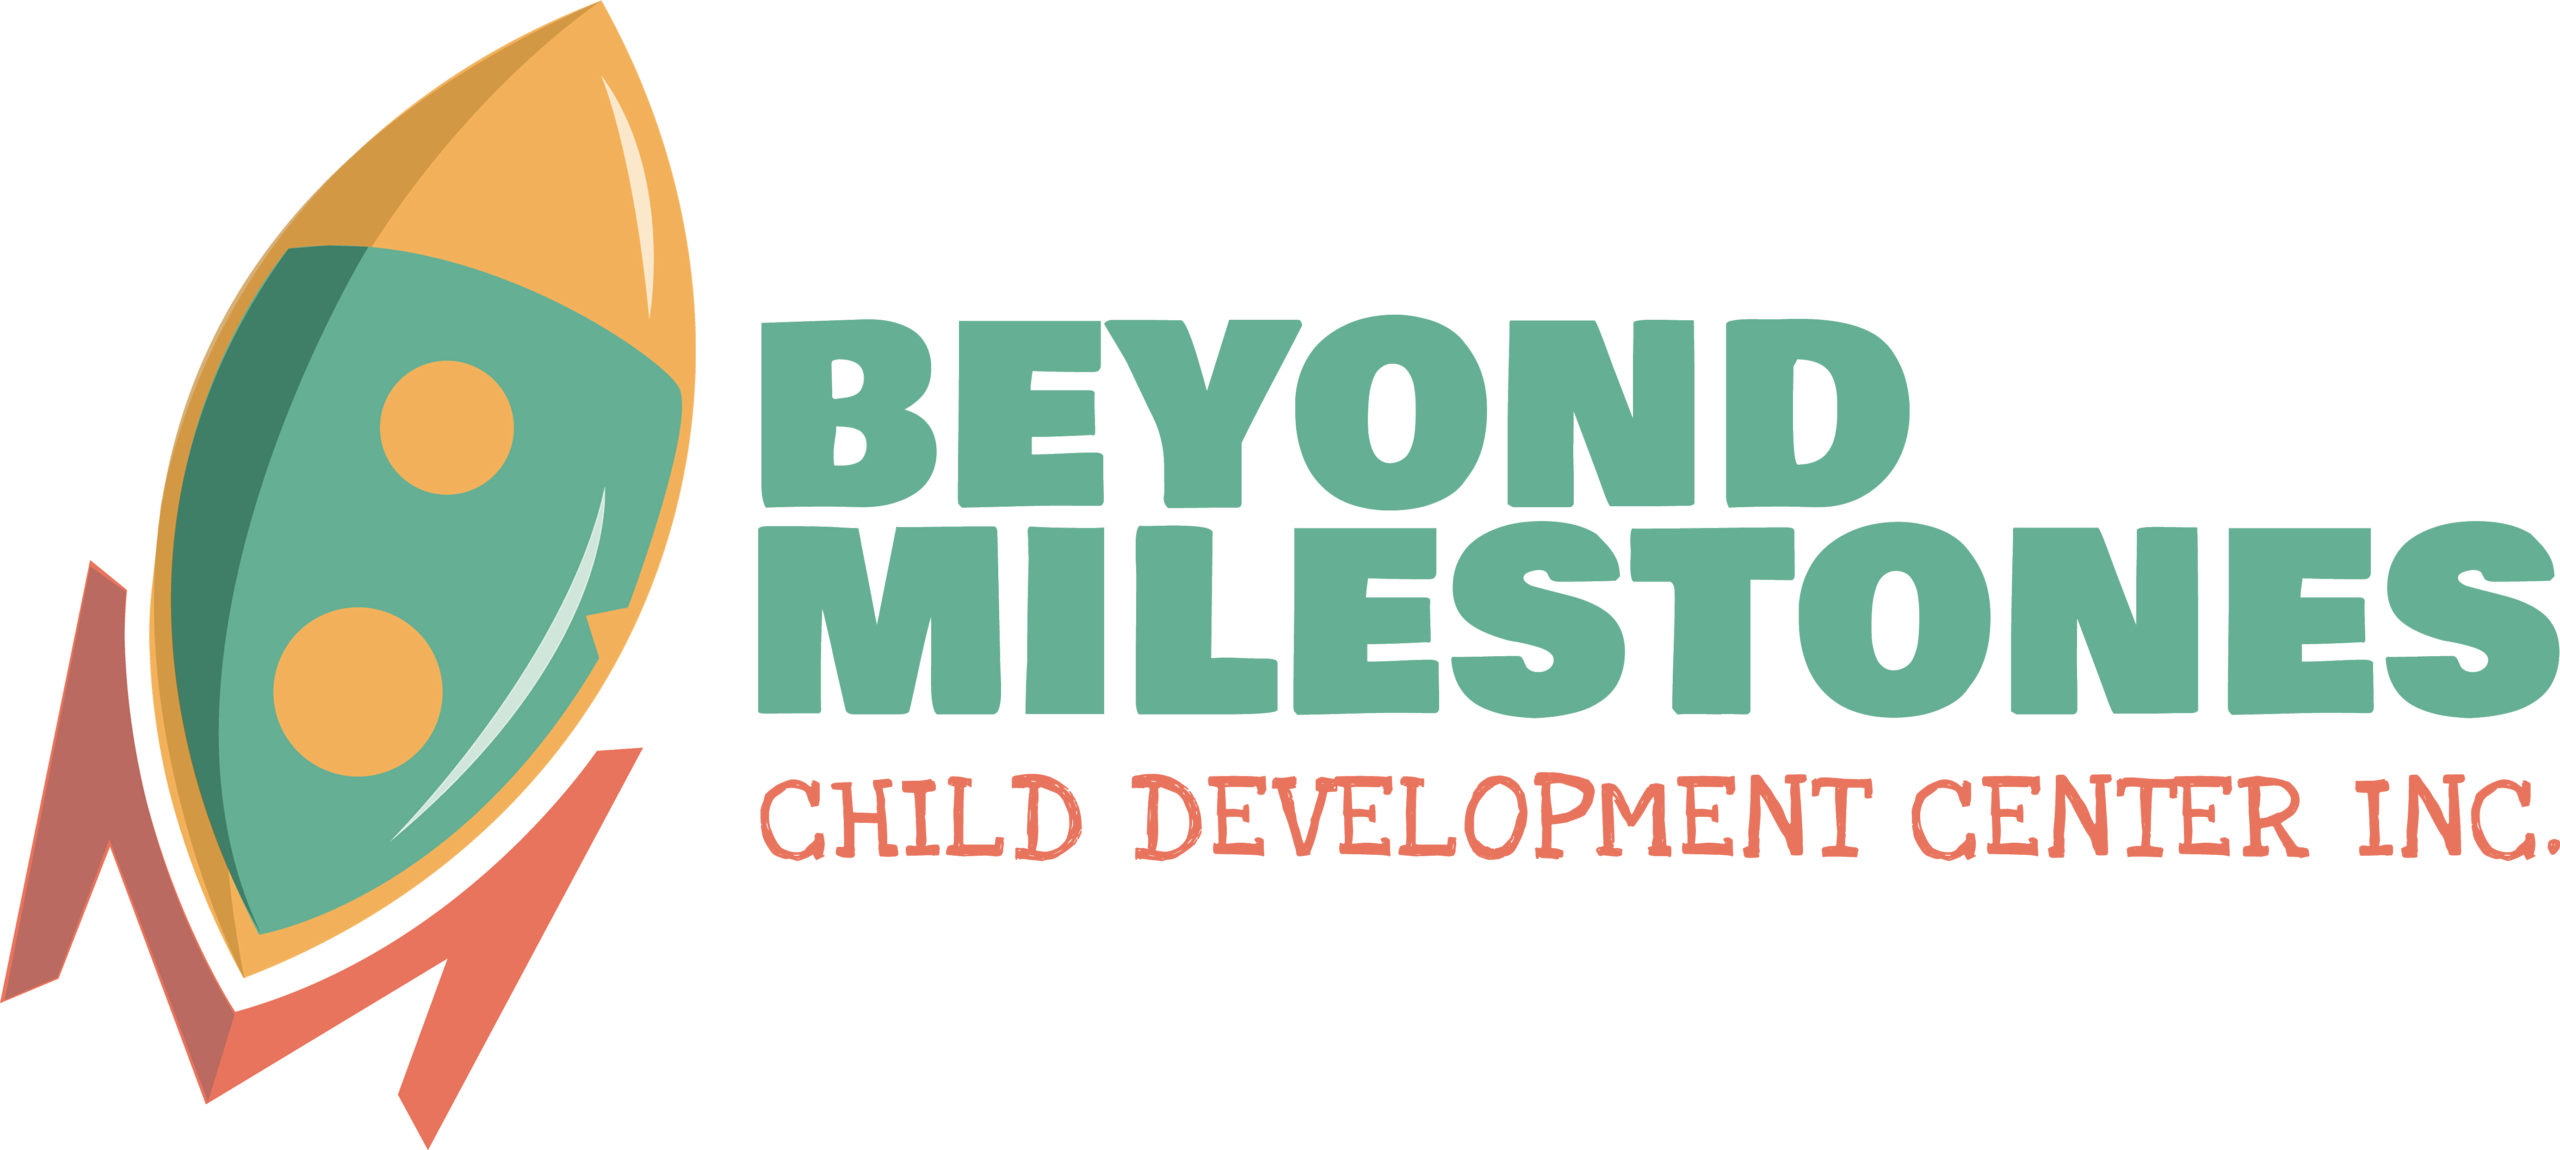 Beyond Milestones Child Development Center